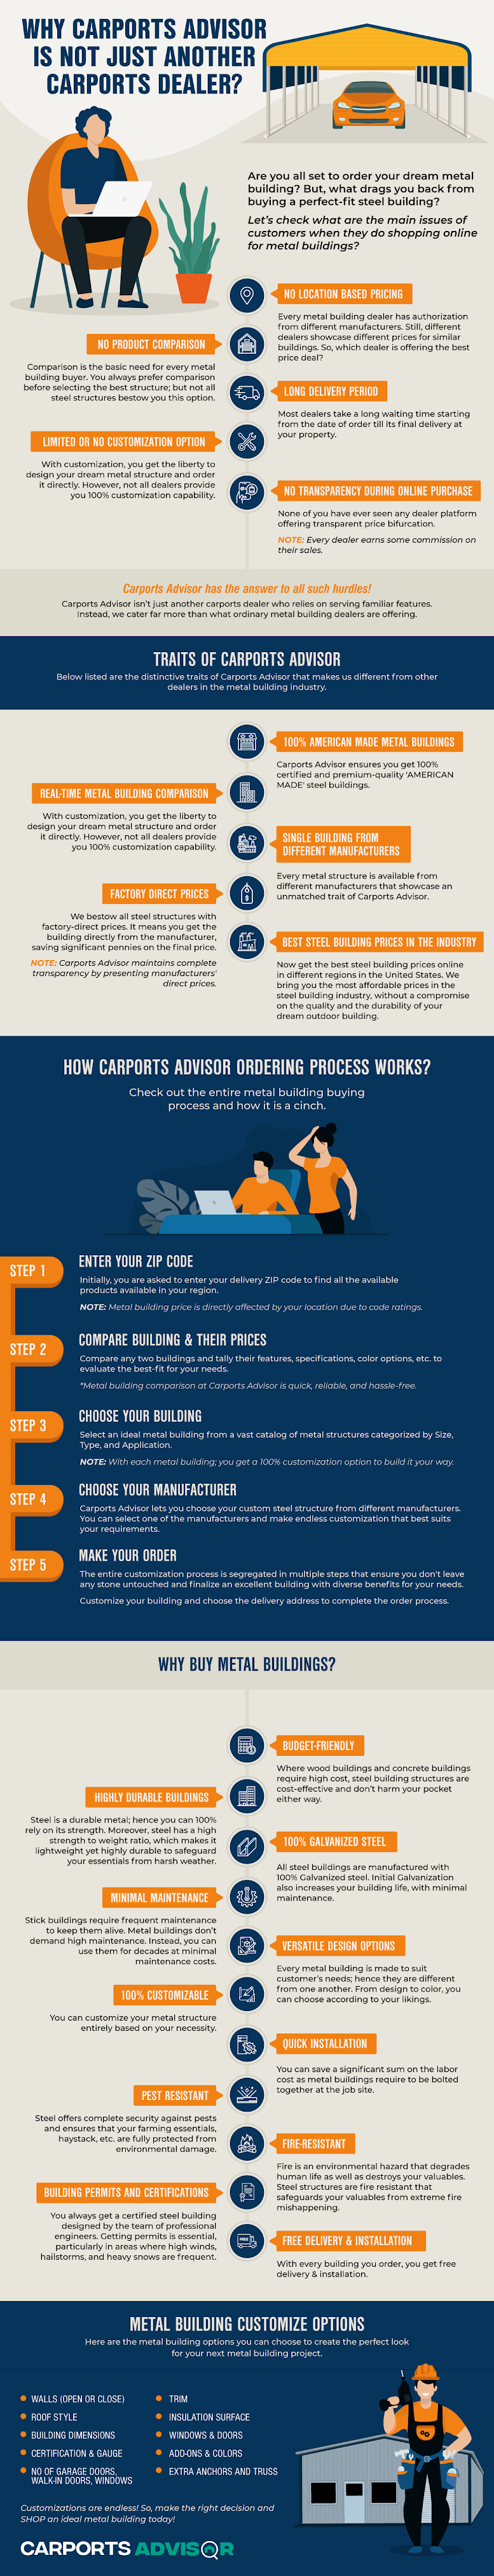 why-carports-advisor-is-not-just-another-carports-dealer-infographic